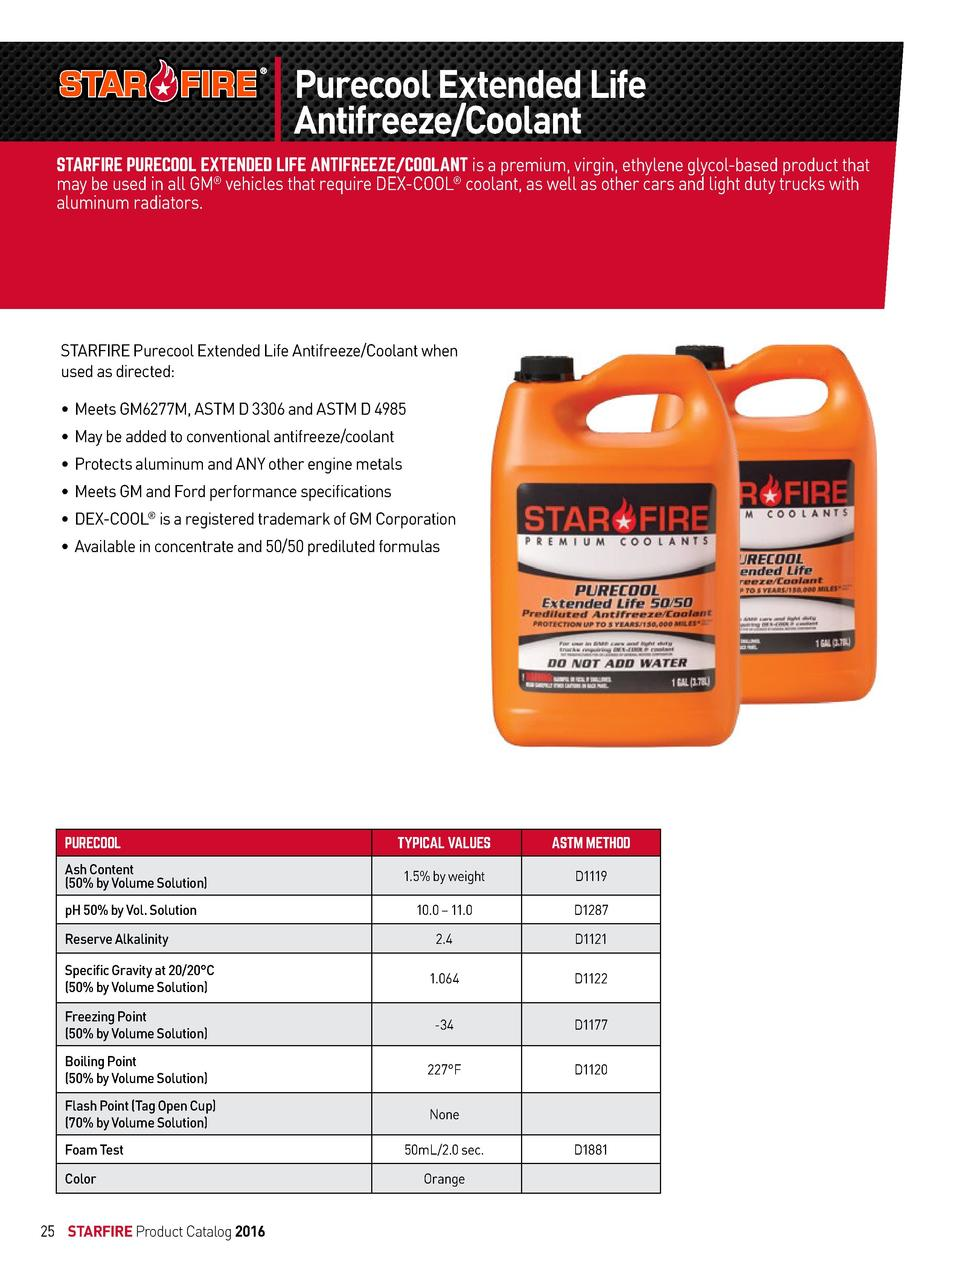 Purecool Extended Life Antifreeze Coolant STARFIRE PURECOOL EXTENDED LIFE ANTIFREEZE COOLANT is a premium, virgin, ethylen...